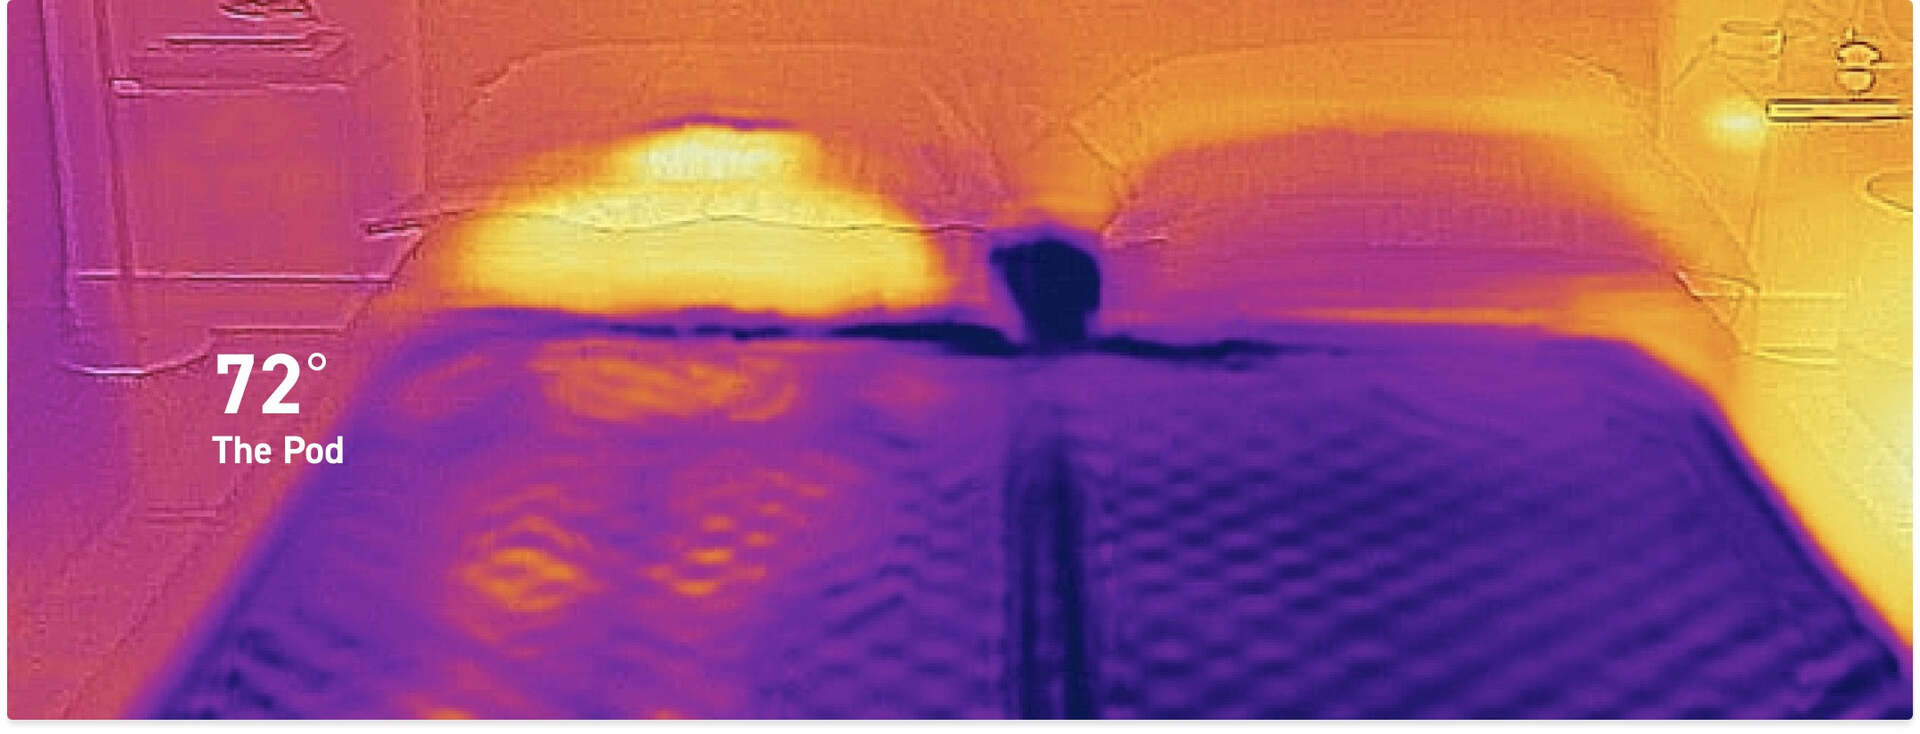 thermal image showing active cooling technology on Eight Sleep Pod Pro